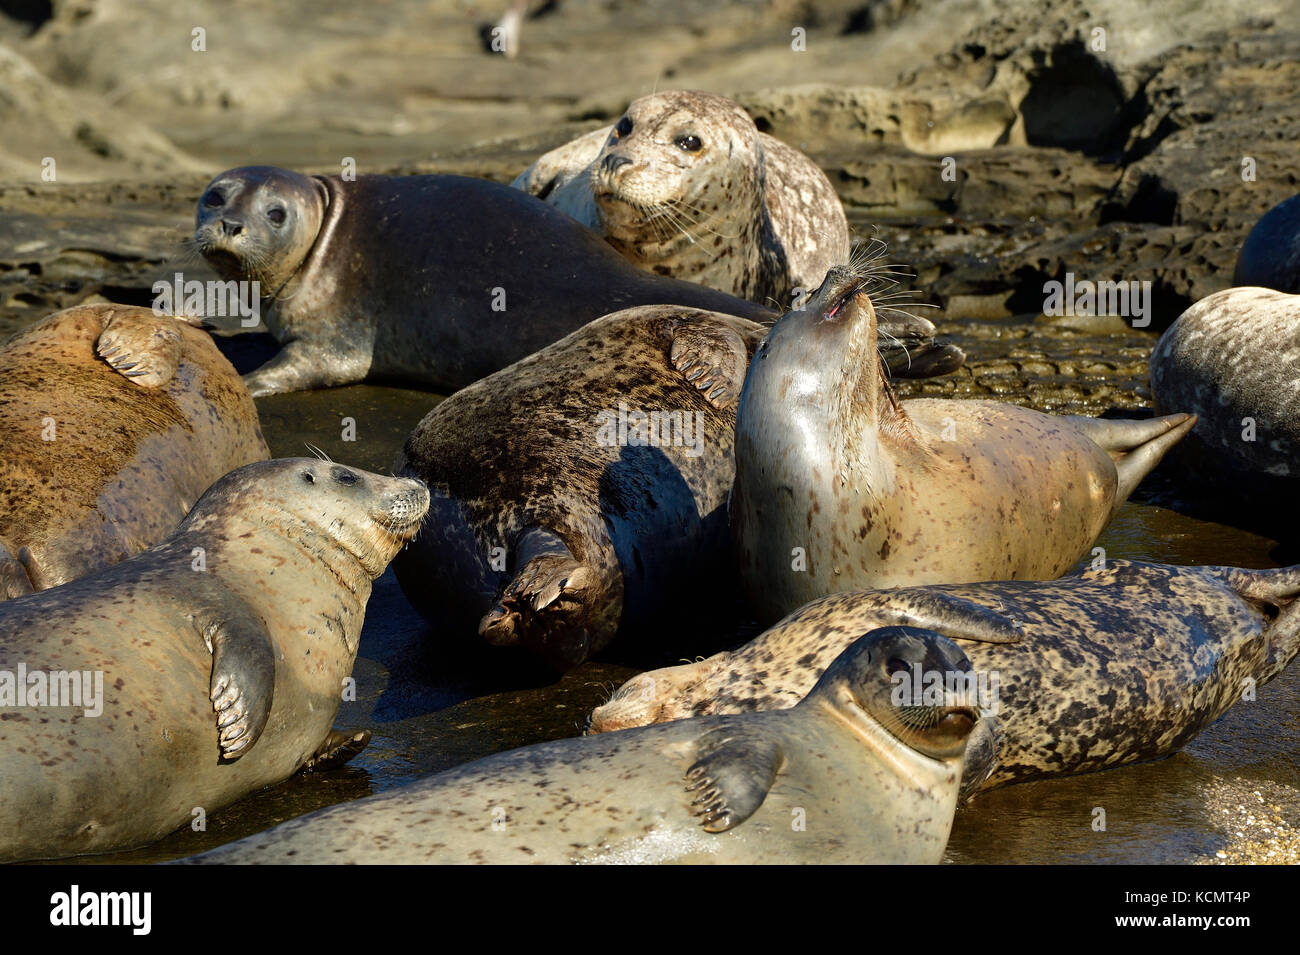 A close up image of a herd of harbor seals (Phoca vitulina);  lays basking in the warm sunlight on a secluded island - Stock Image